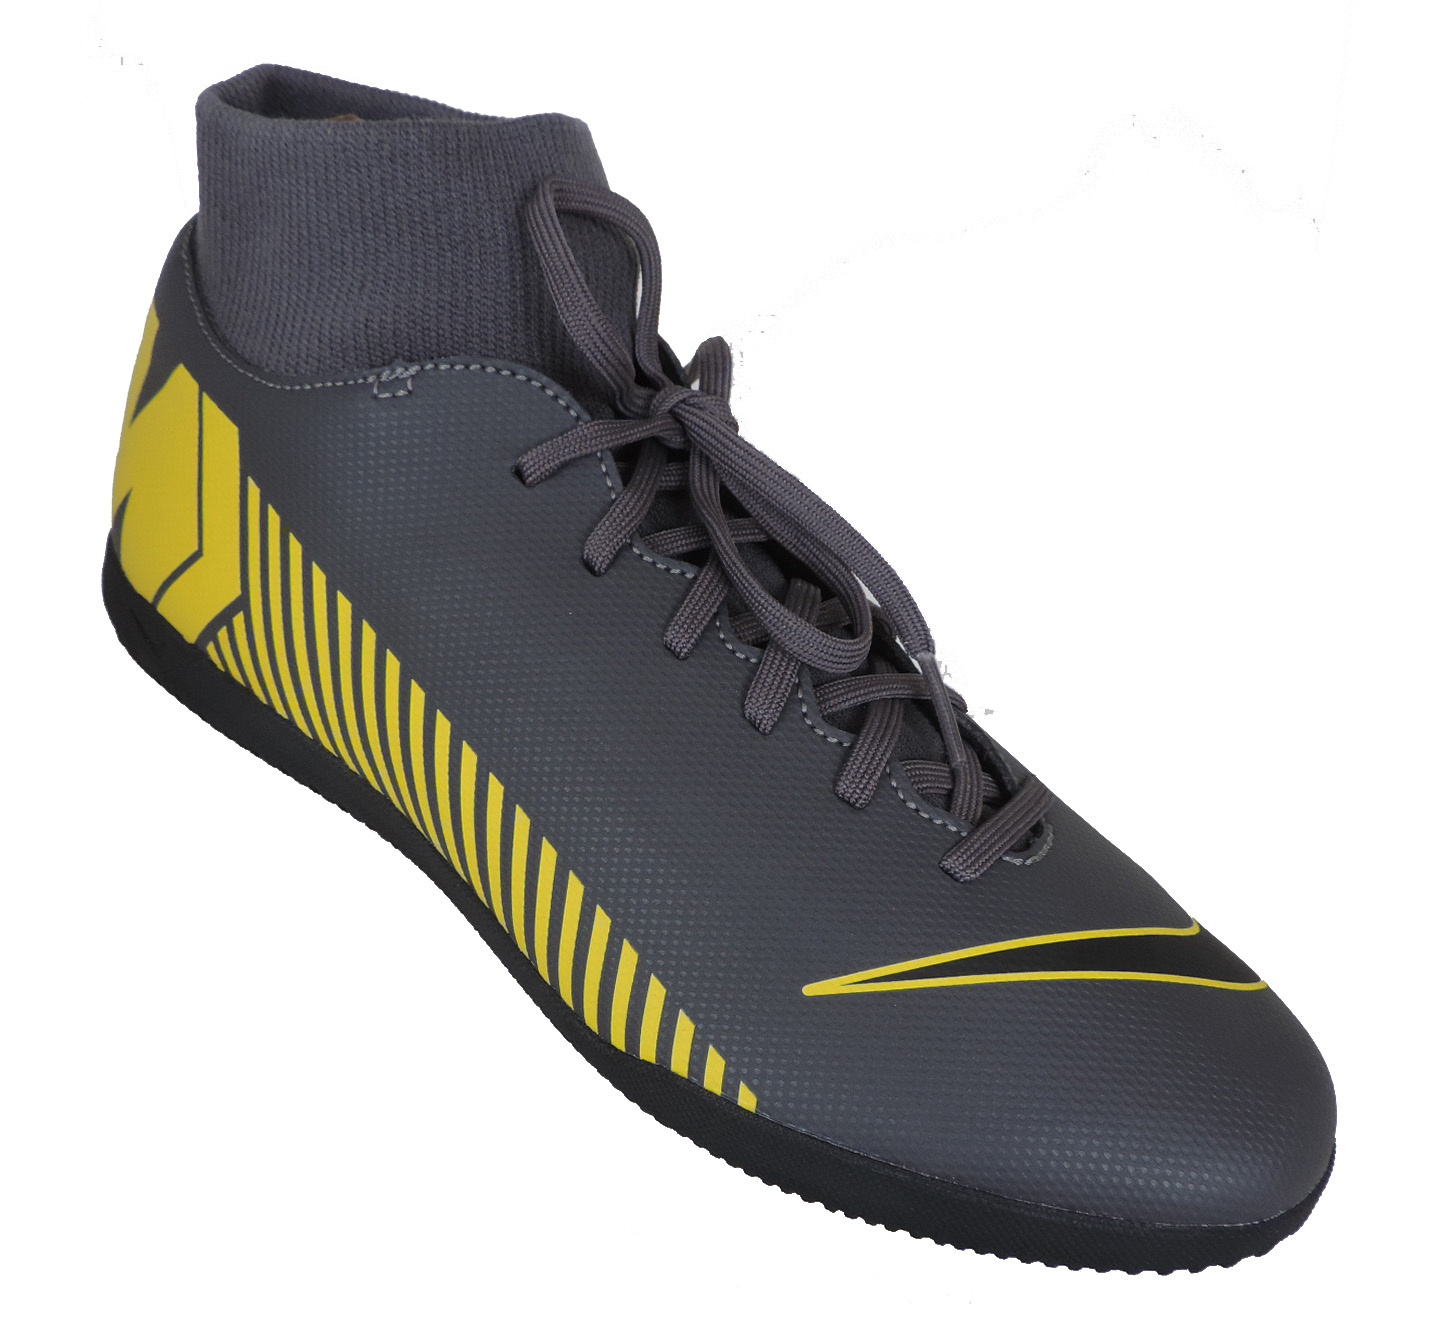 Chuteira Nike Superfly 6 Club IC Dark Grey/Black-Opti Yellow